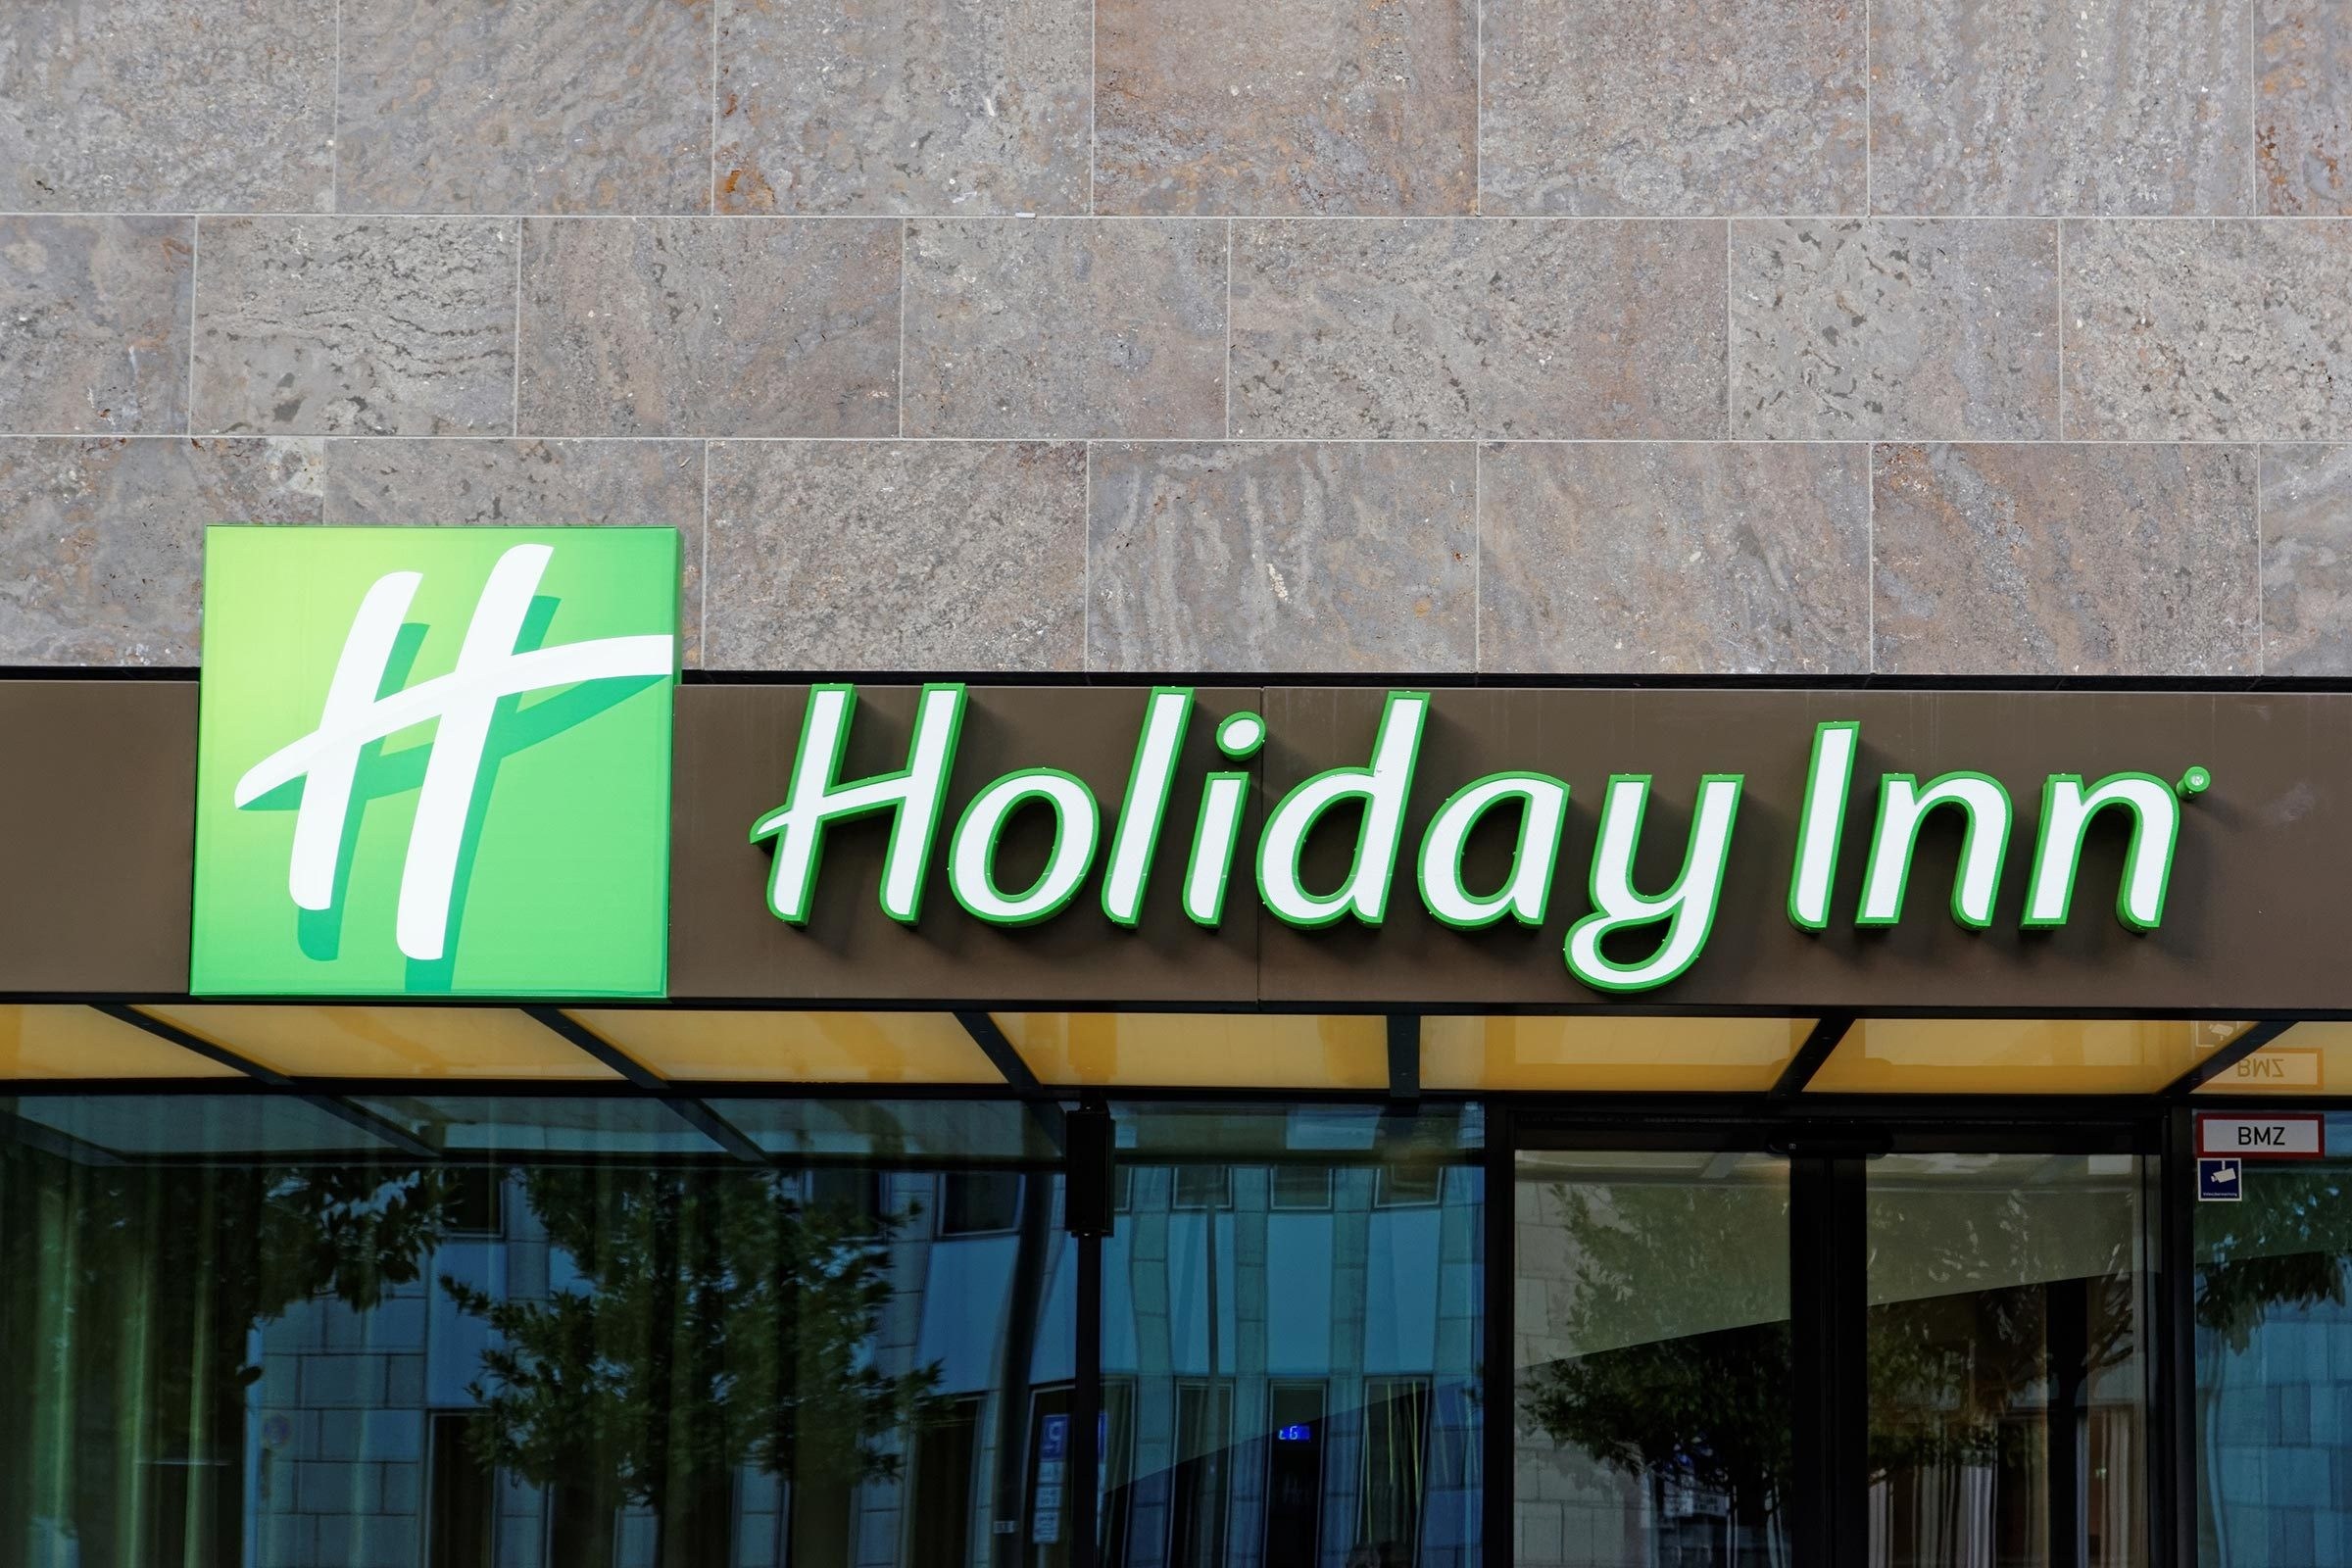 FRANKFURT AM MAIN, GERMANY - AUGUST 5, 2015: Holiday Inn hotel sign and logo. Holiday Inn is a multinational brand of hotels, part of the British InterContinental Hotels Group.